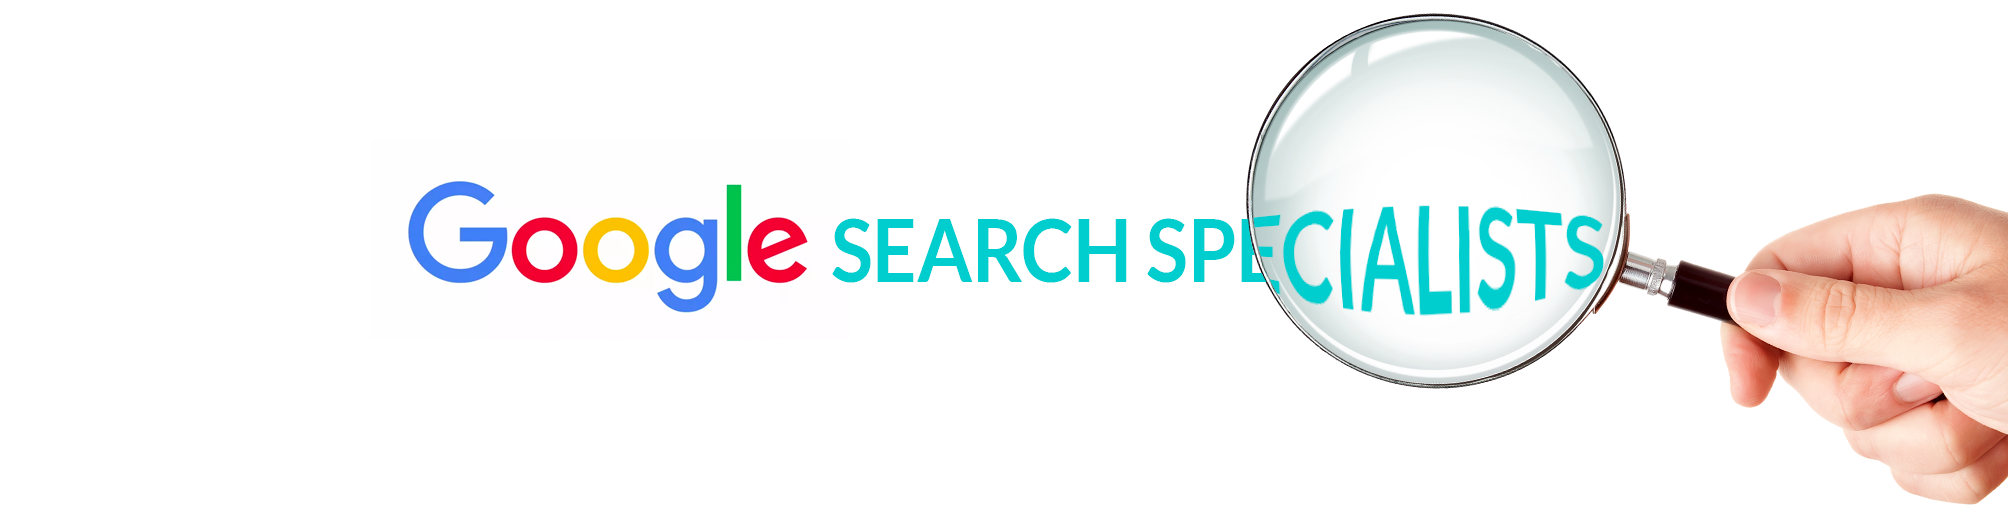 google search specialists and seo experts delivering page 1 results on google